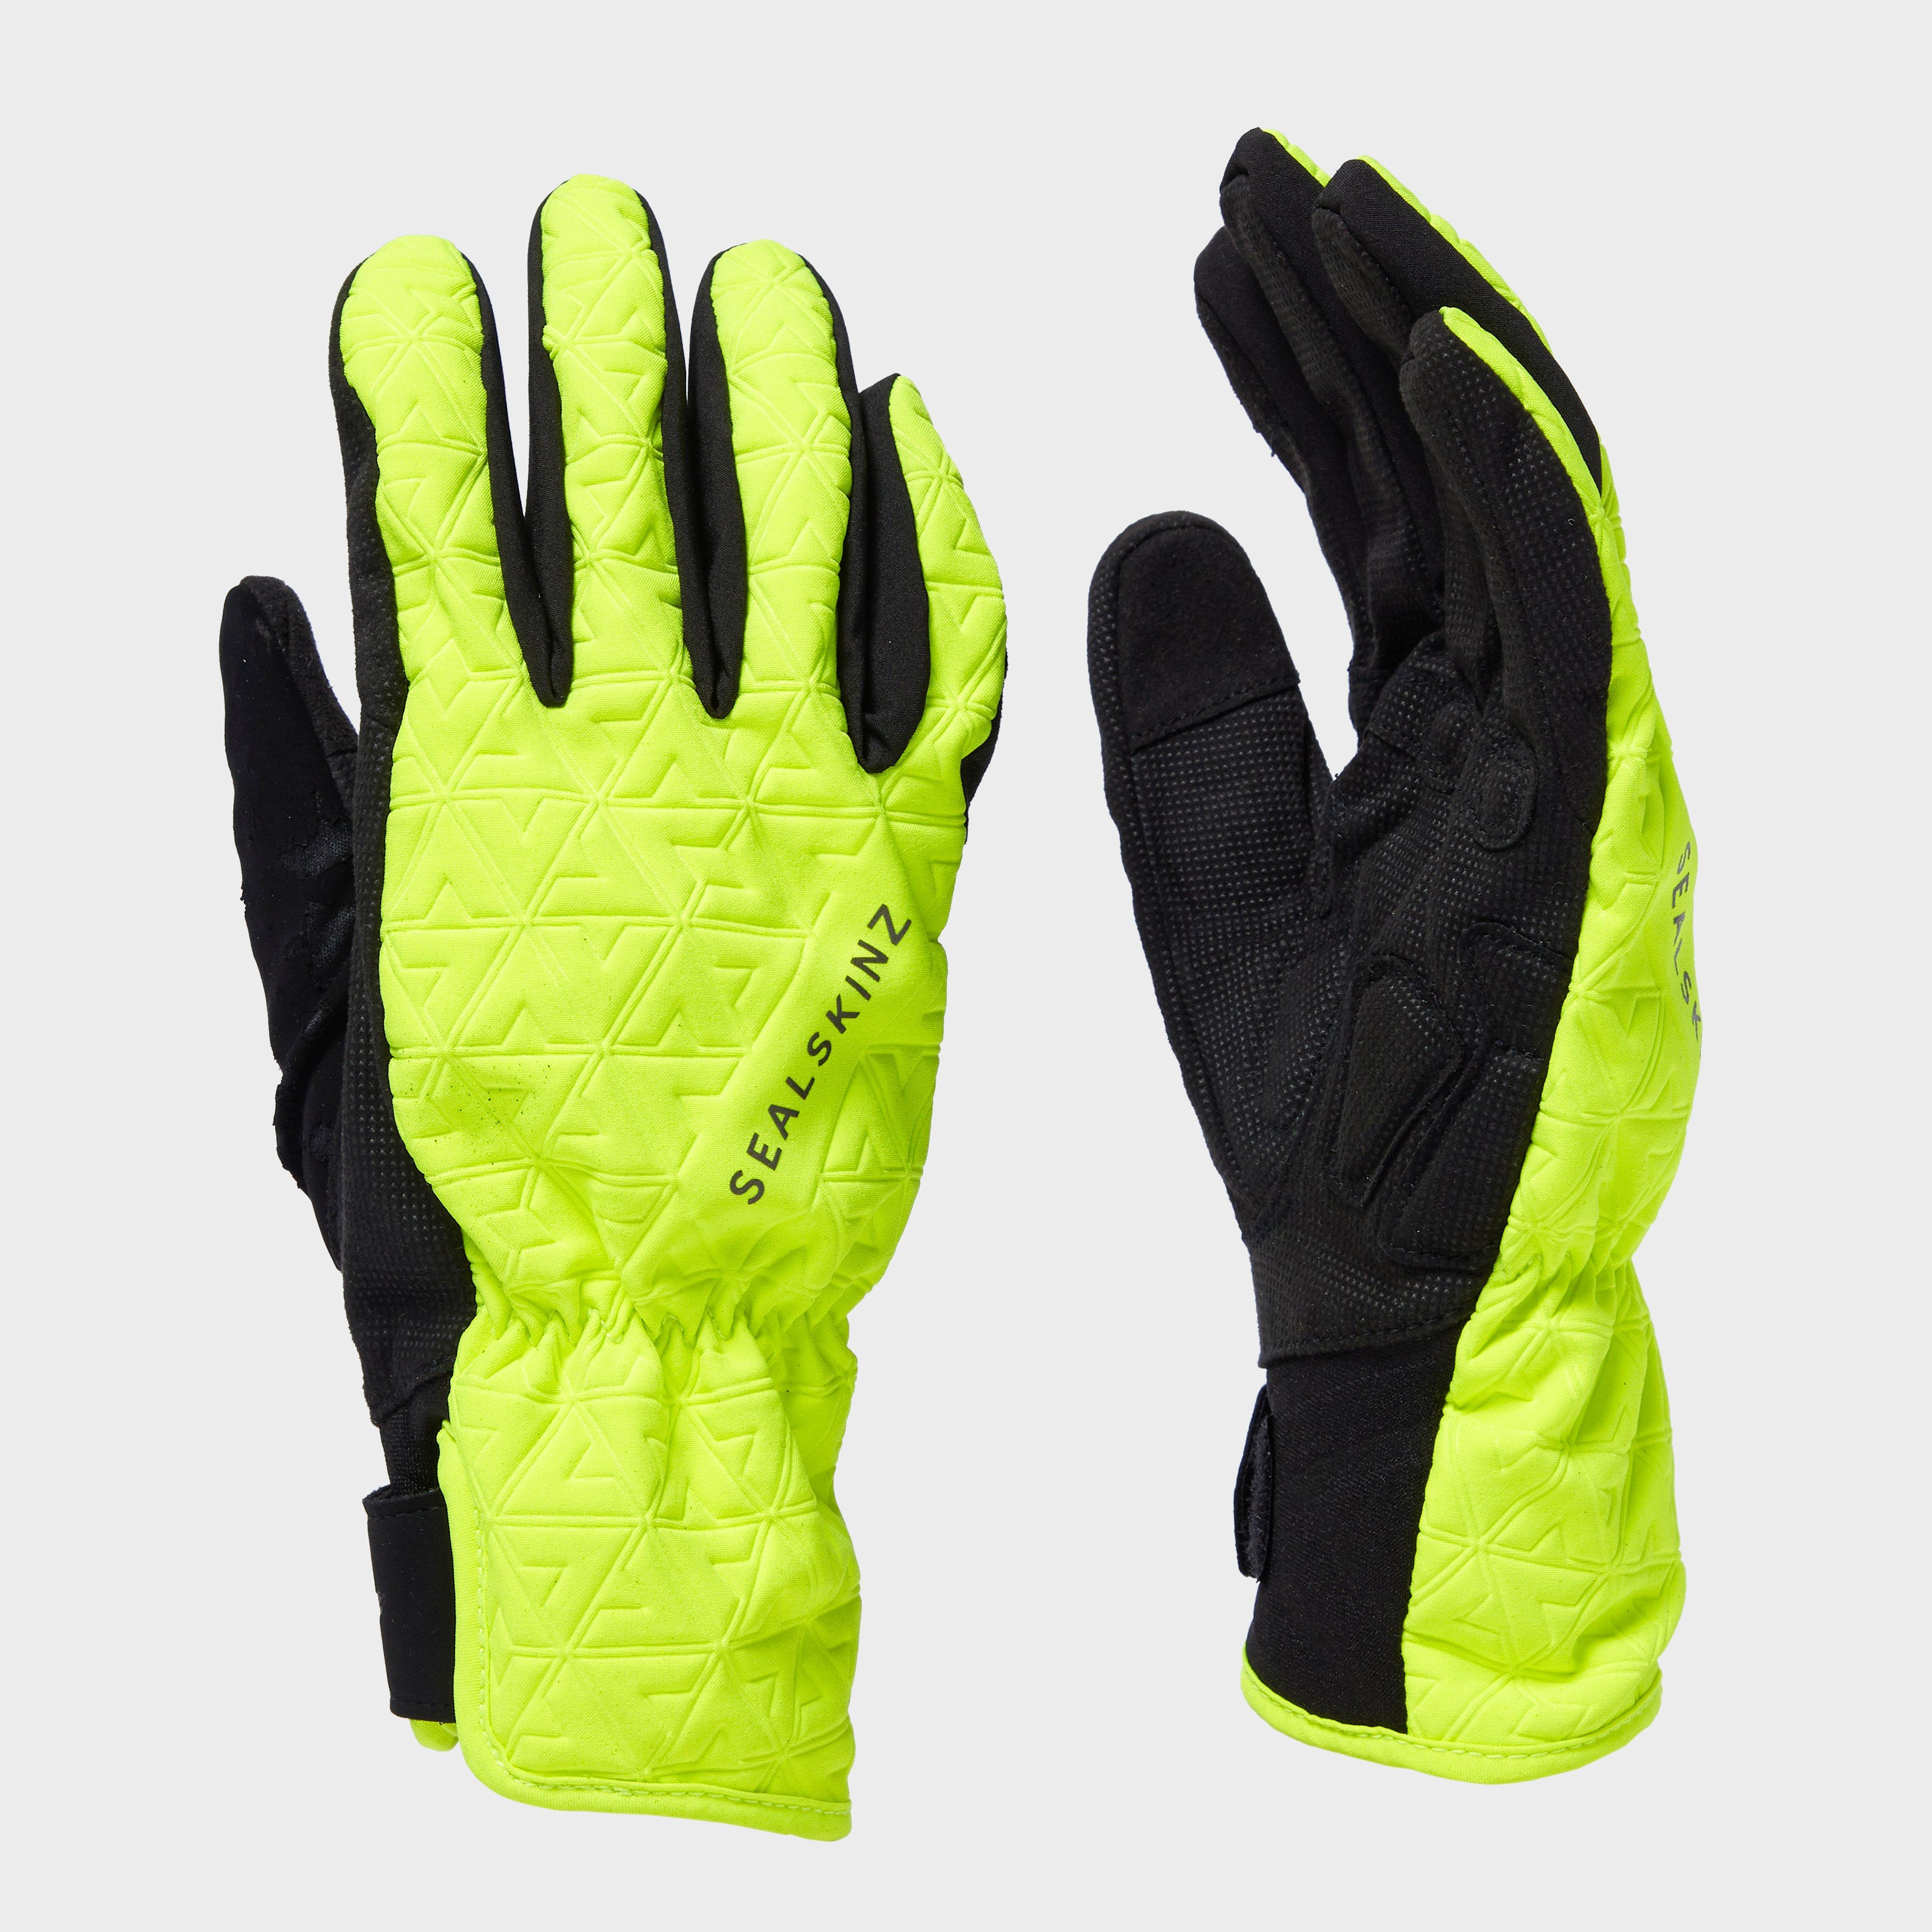 Sealskinz Women's All Weather Gloves, Yellow